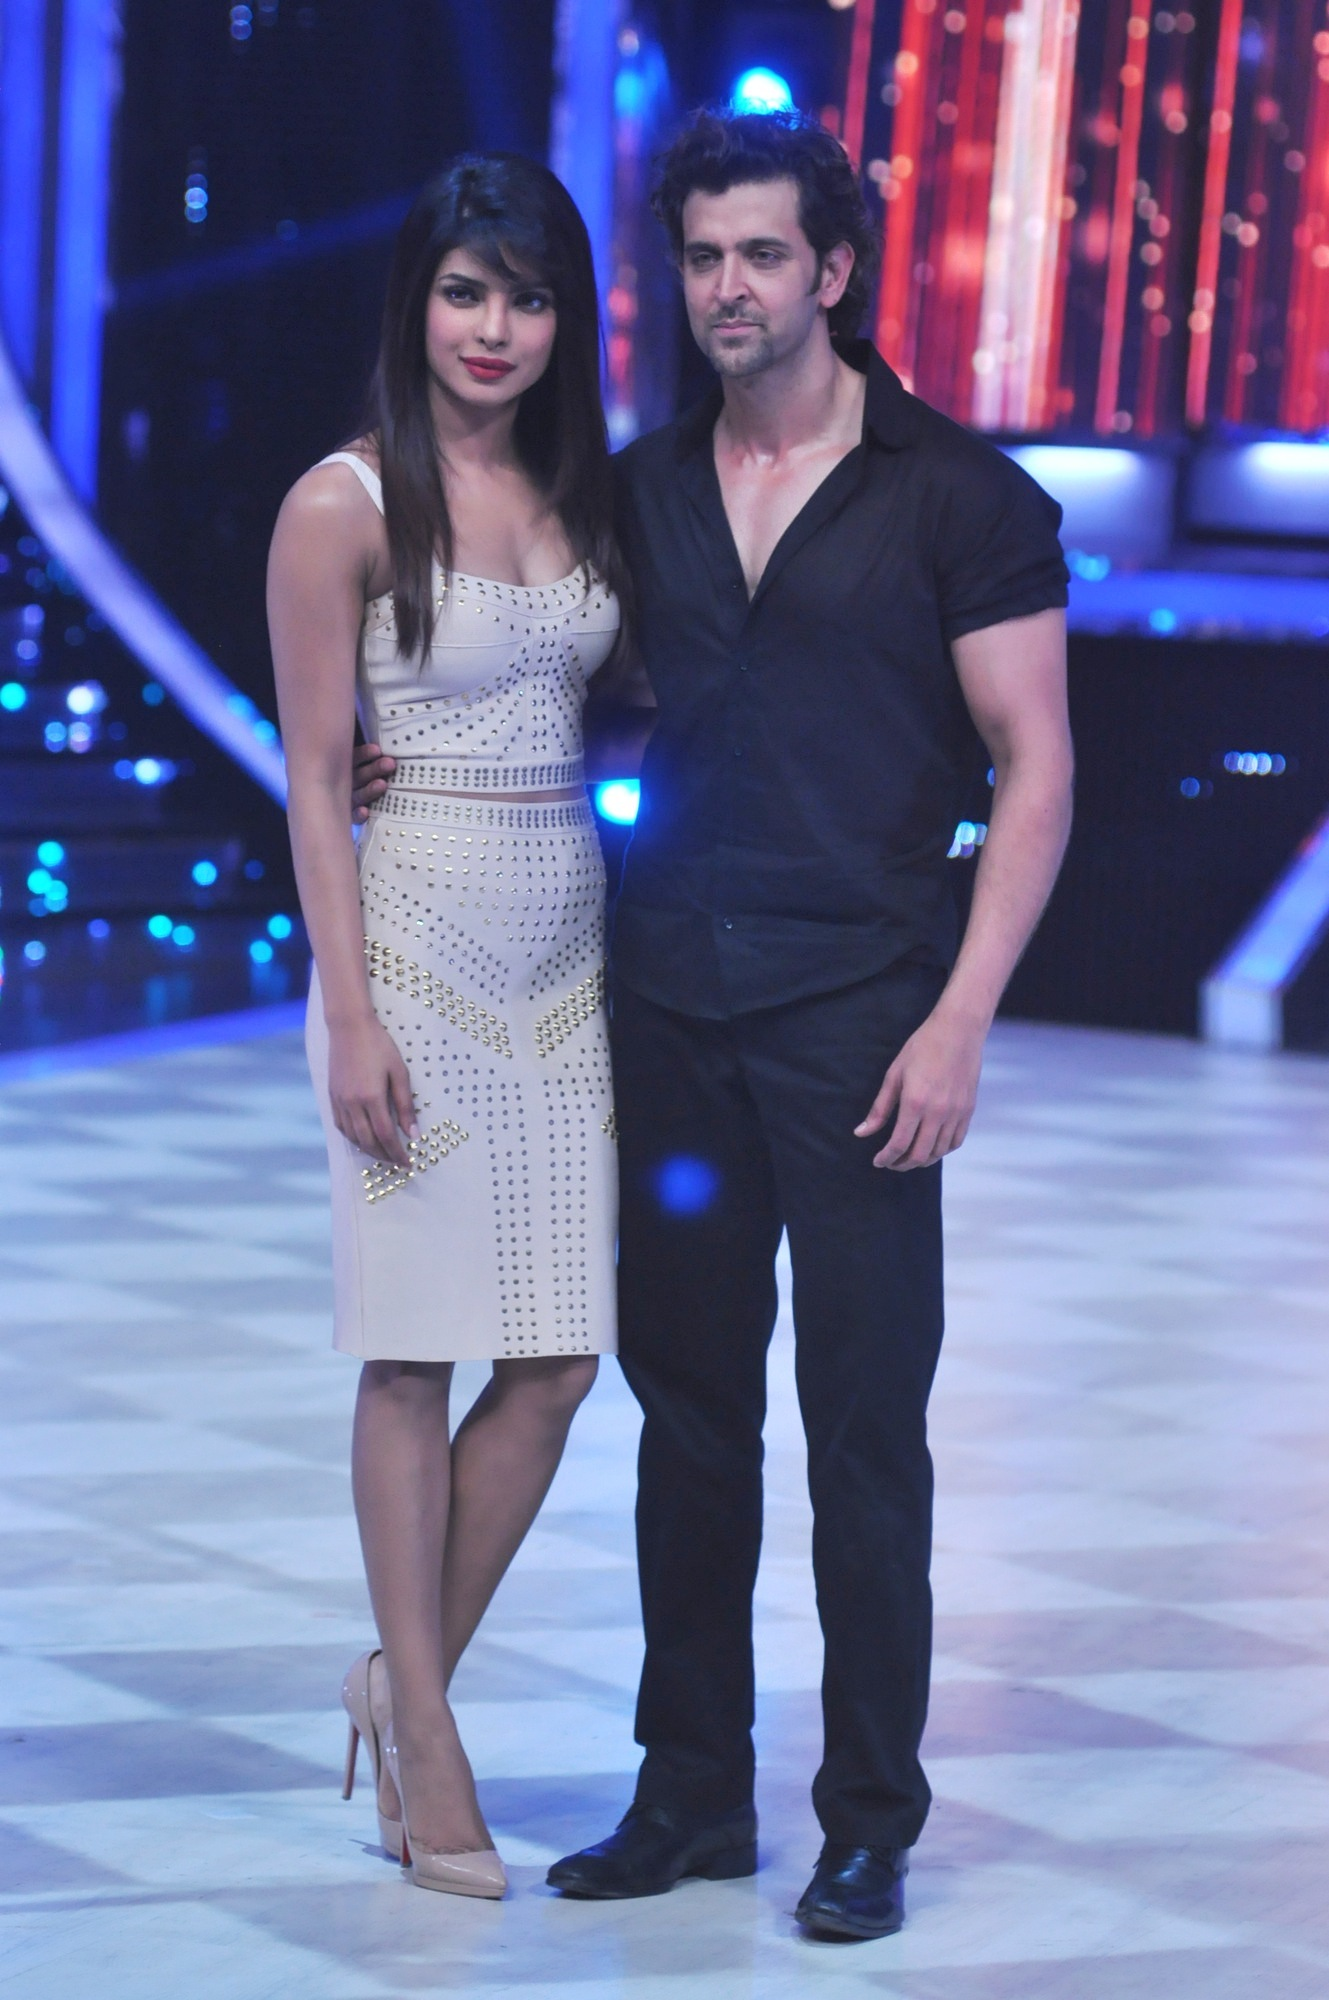 hrithik roshan with priyanka chopra promoting krrish 3 at jhalak